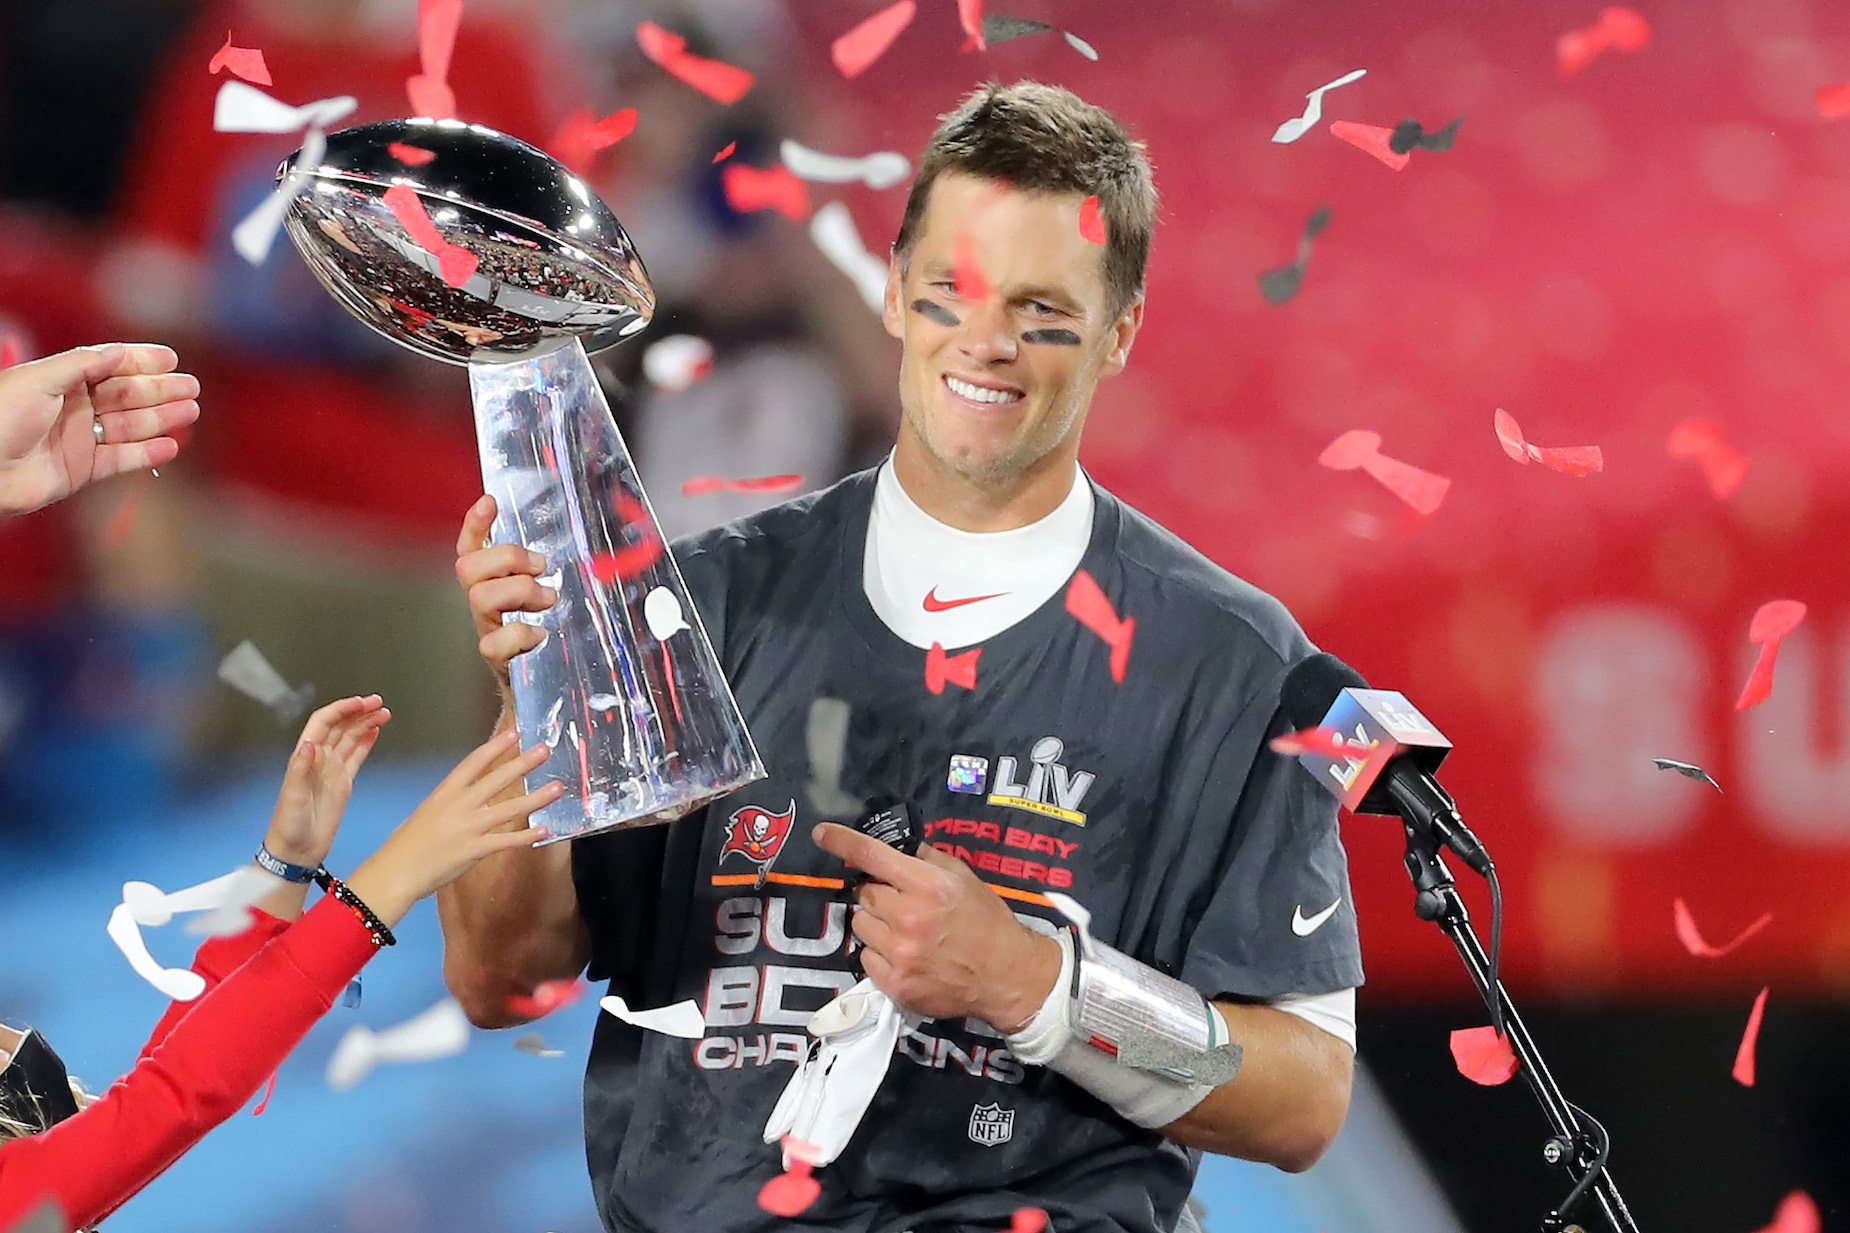 Tampa Bay Buccaneers quarterback Tom Brady lifts the Lombardi Trophy after victory in Super Bowl 55